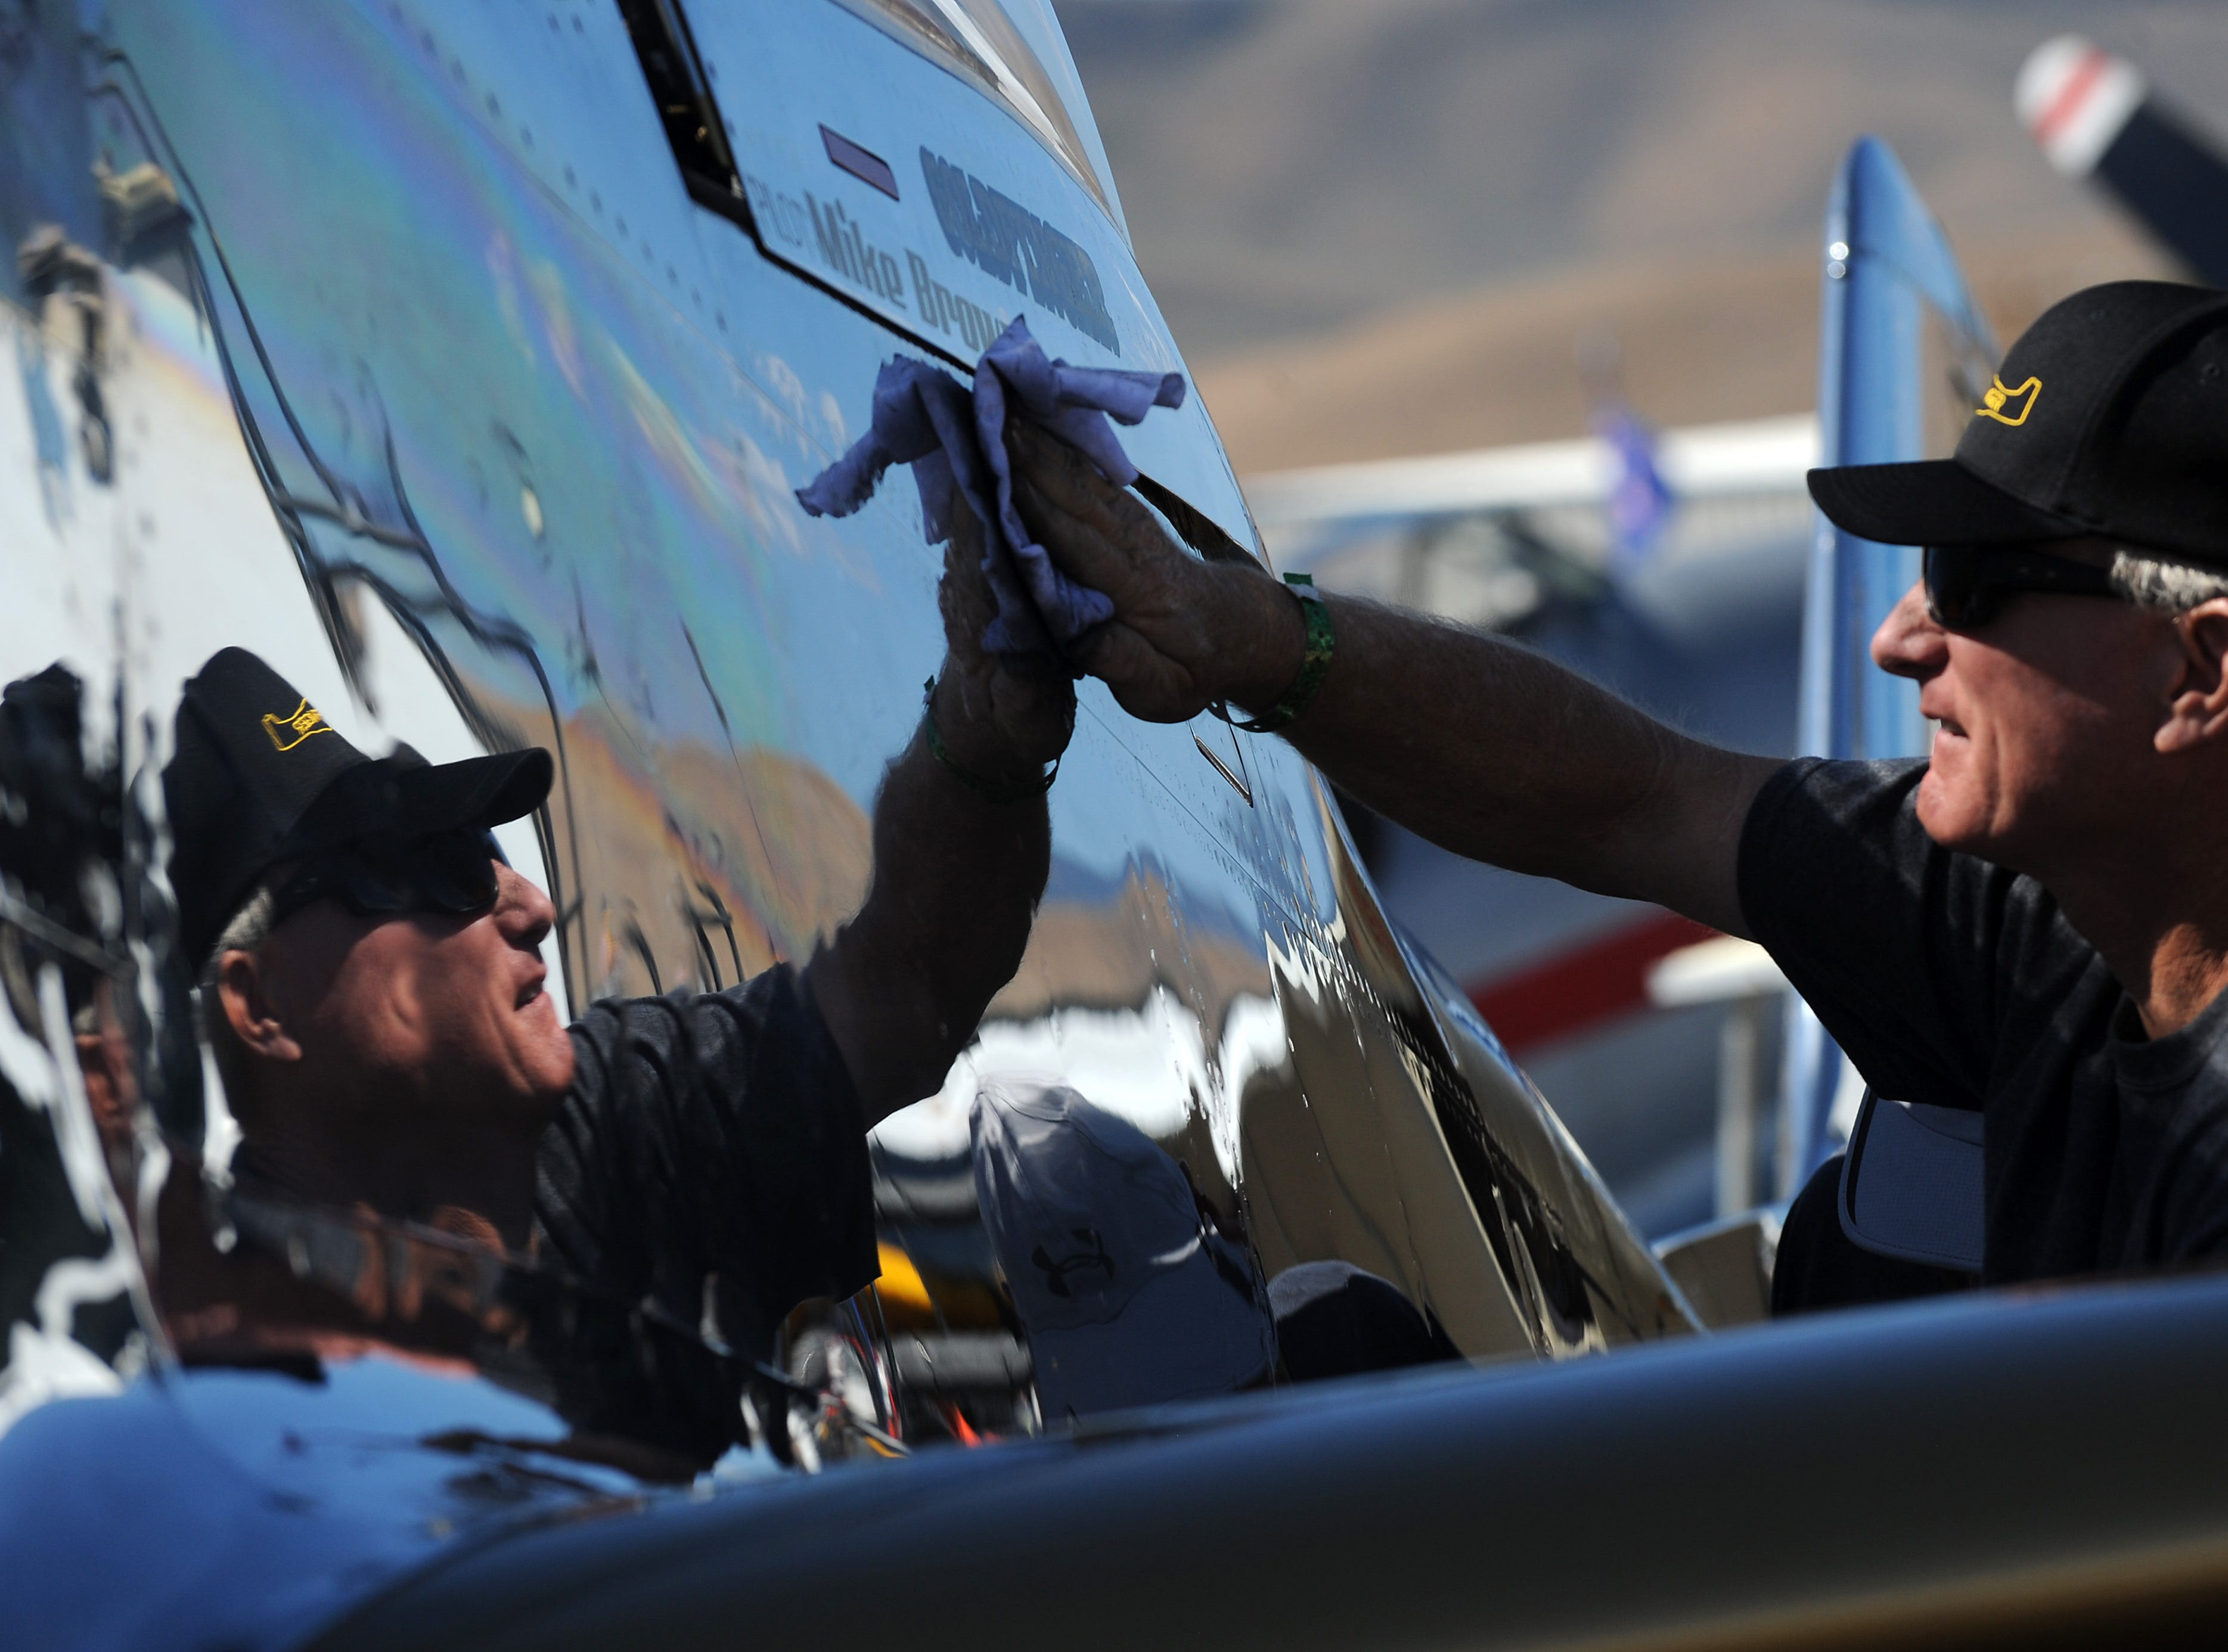 A crew member puts mirror polish on a plane during the STIHL National Championship Air Races at Stead Airport north of Reno on Sept. 15, 2018.